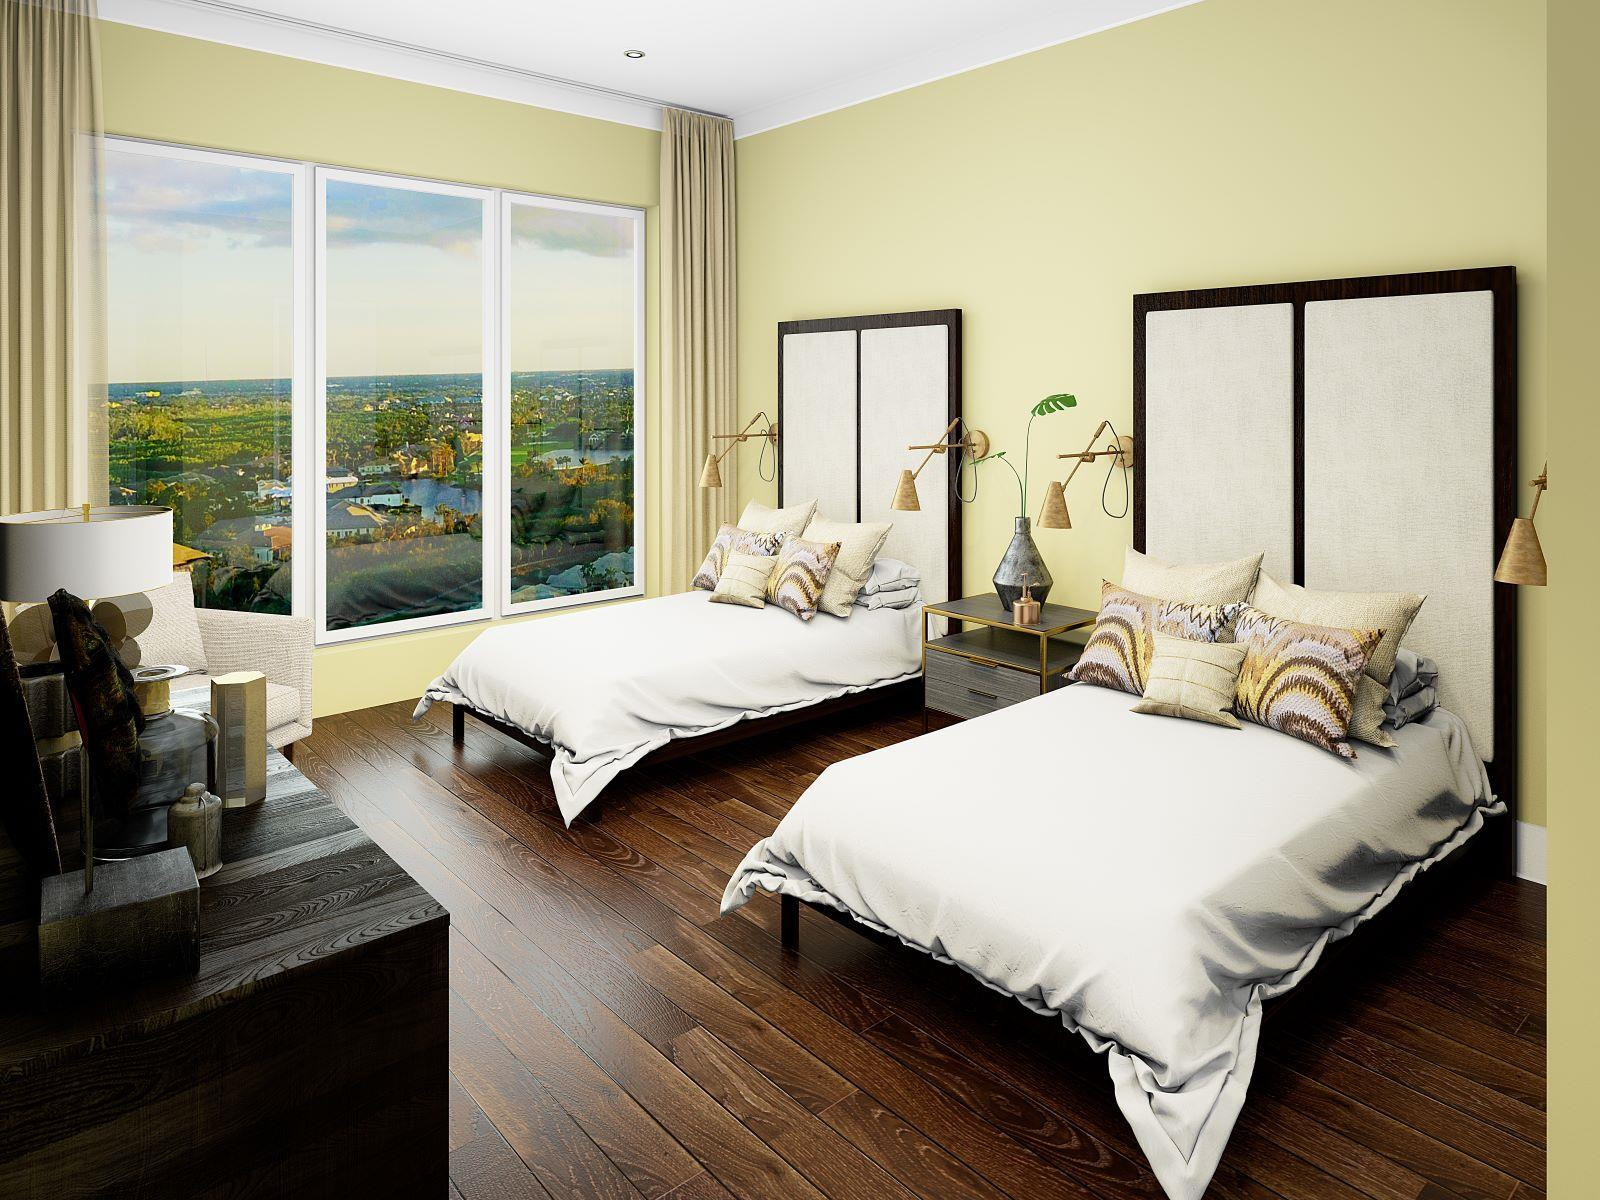 Bedroom featured in the Omega Residence 03 By The Ronto Group in Fort Myers, FL